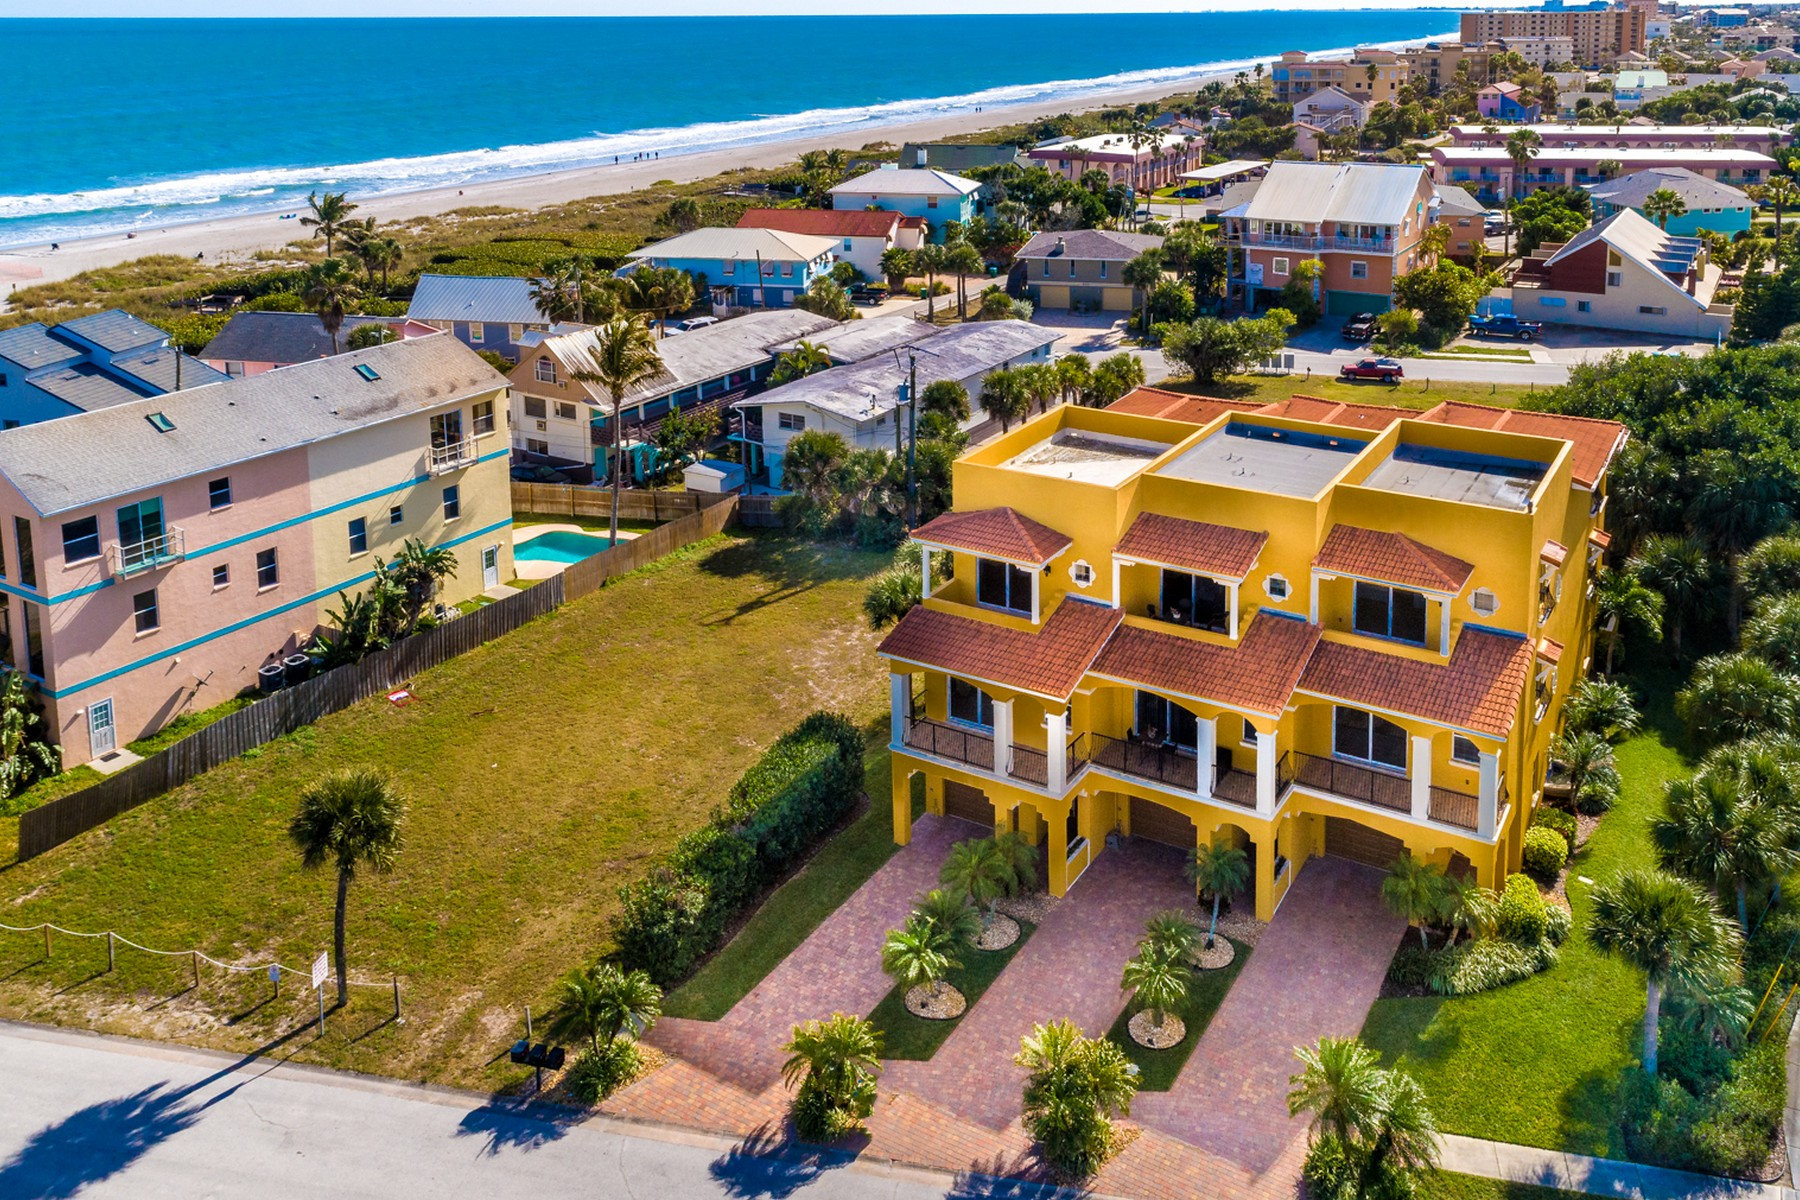 townhouses for Sale at Beautiful, luxury townhome with sensational ocean views. 603 Washington Avenue Unit 1 Cape Canaveral, Florida 32920 United States